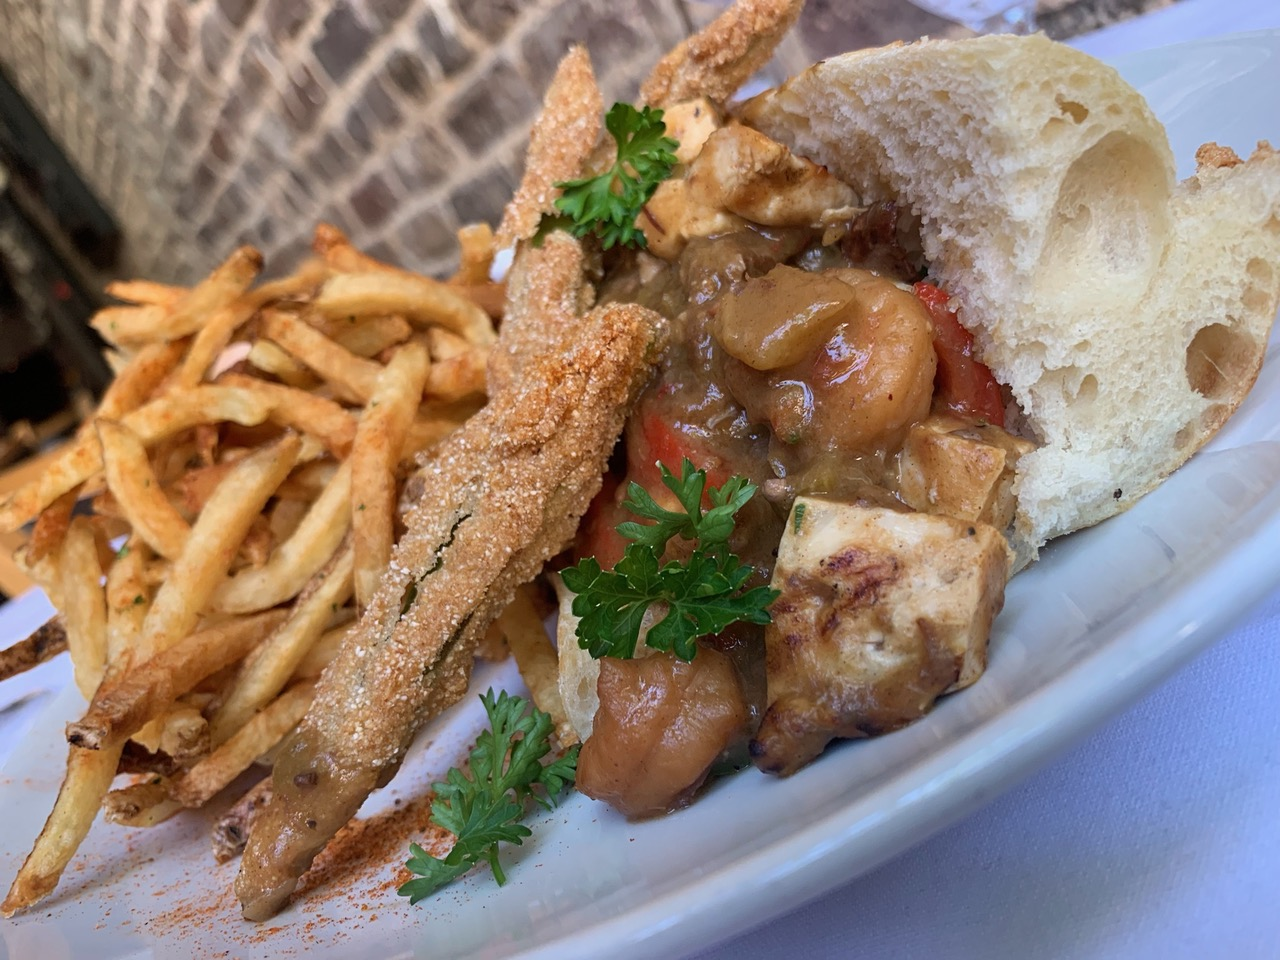 A po' boy sandwich from chef Sandra Batiste, future owner of Bayou Scratch Kitchen at the Gramercy.